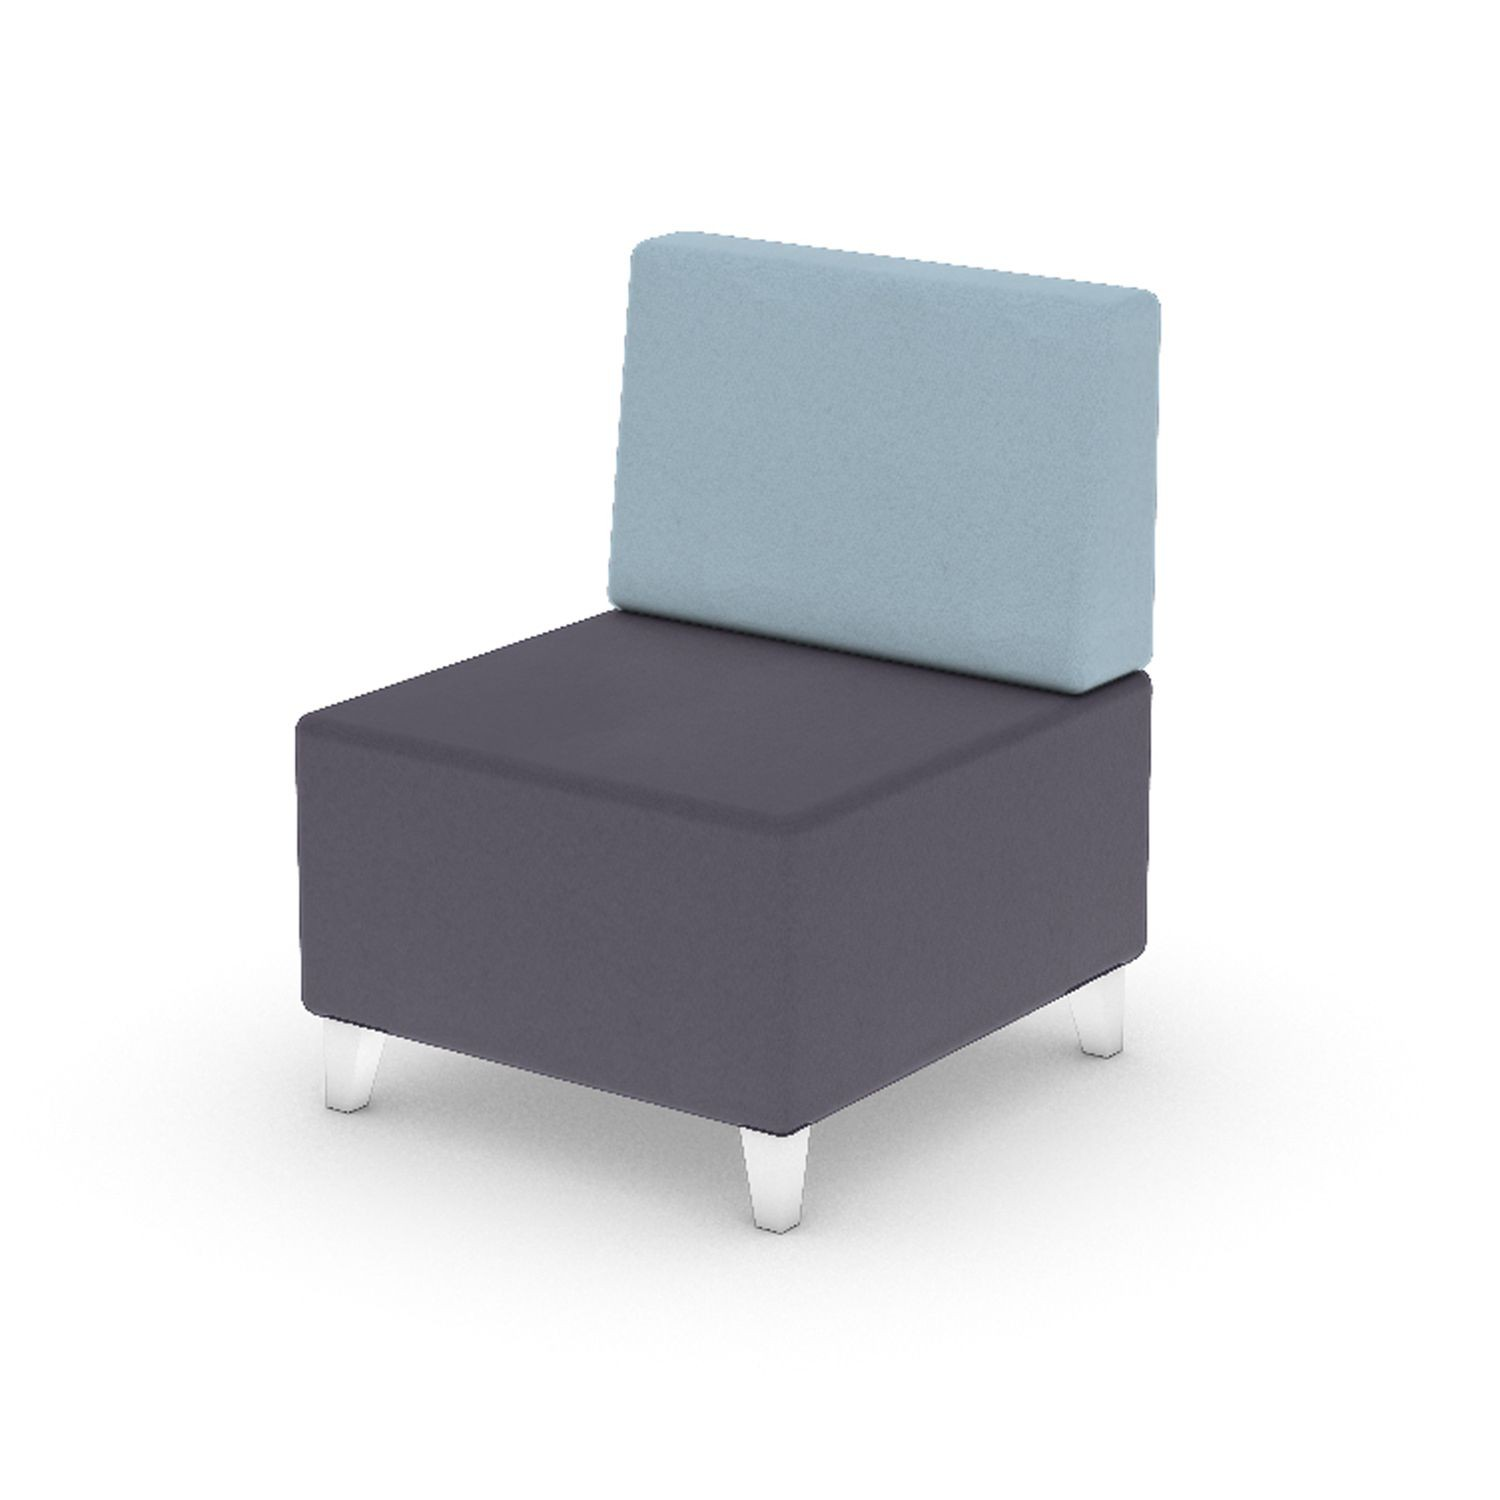 Soft Seating Rapid Small Stool